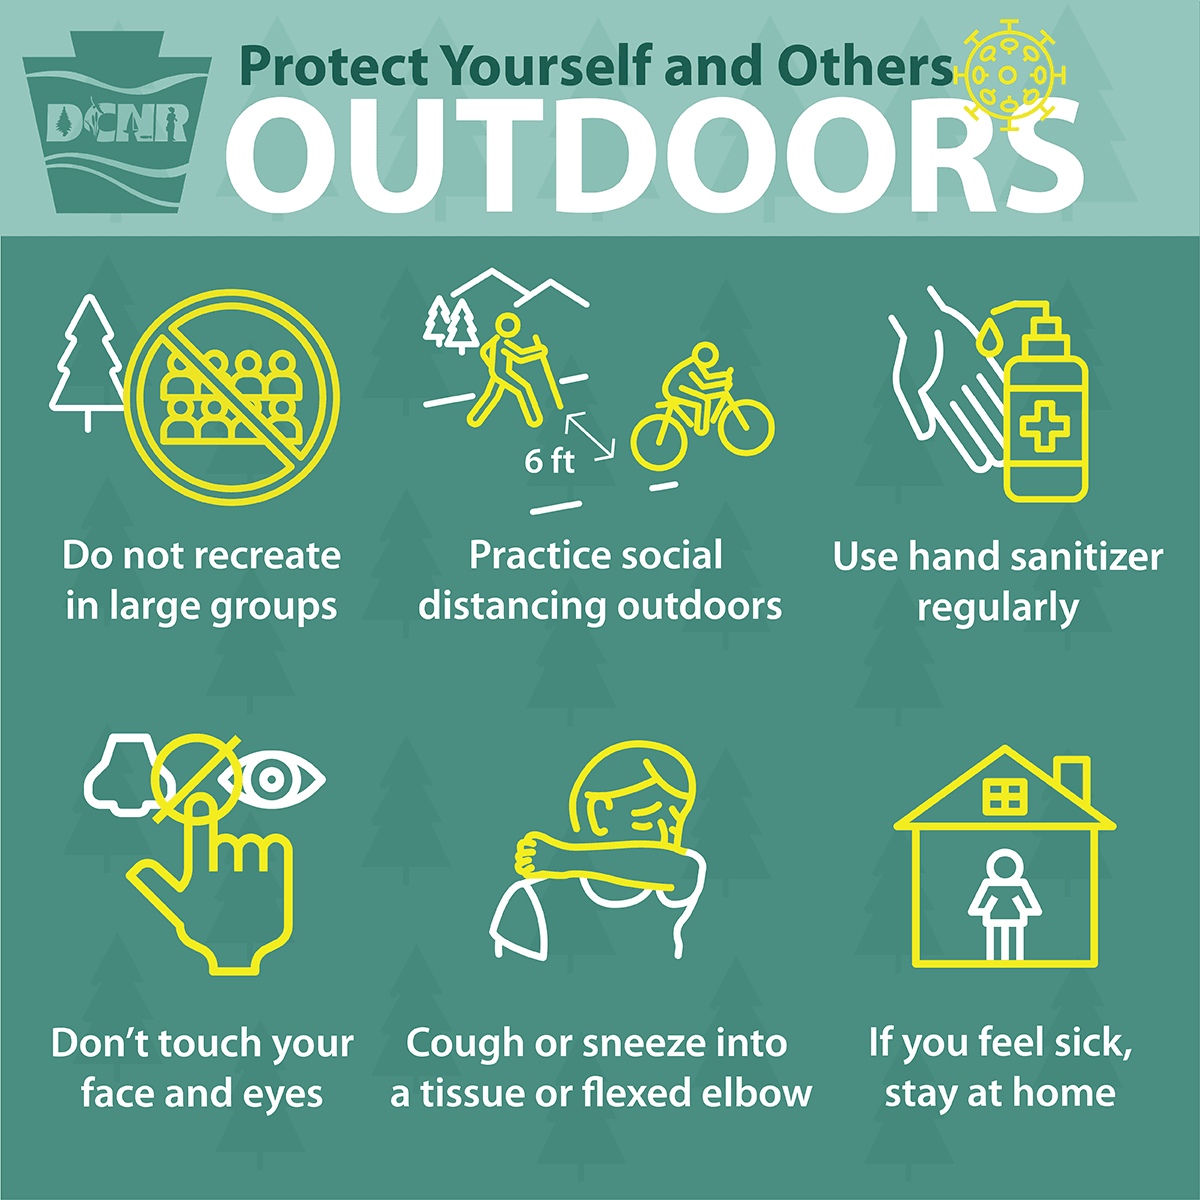 Tips to Stay Healthy Outdoors